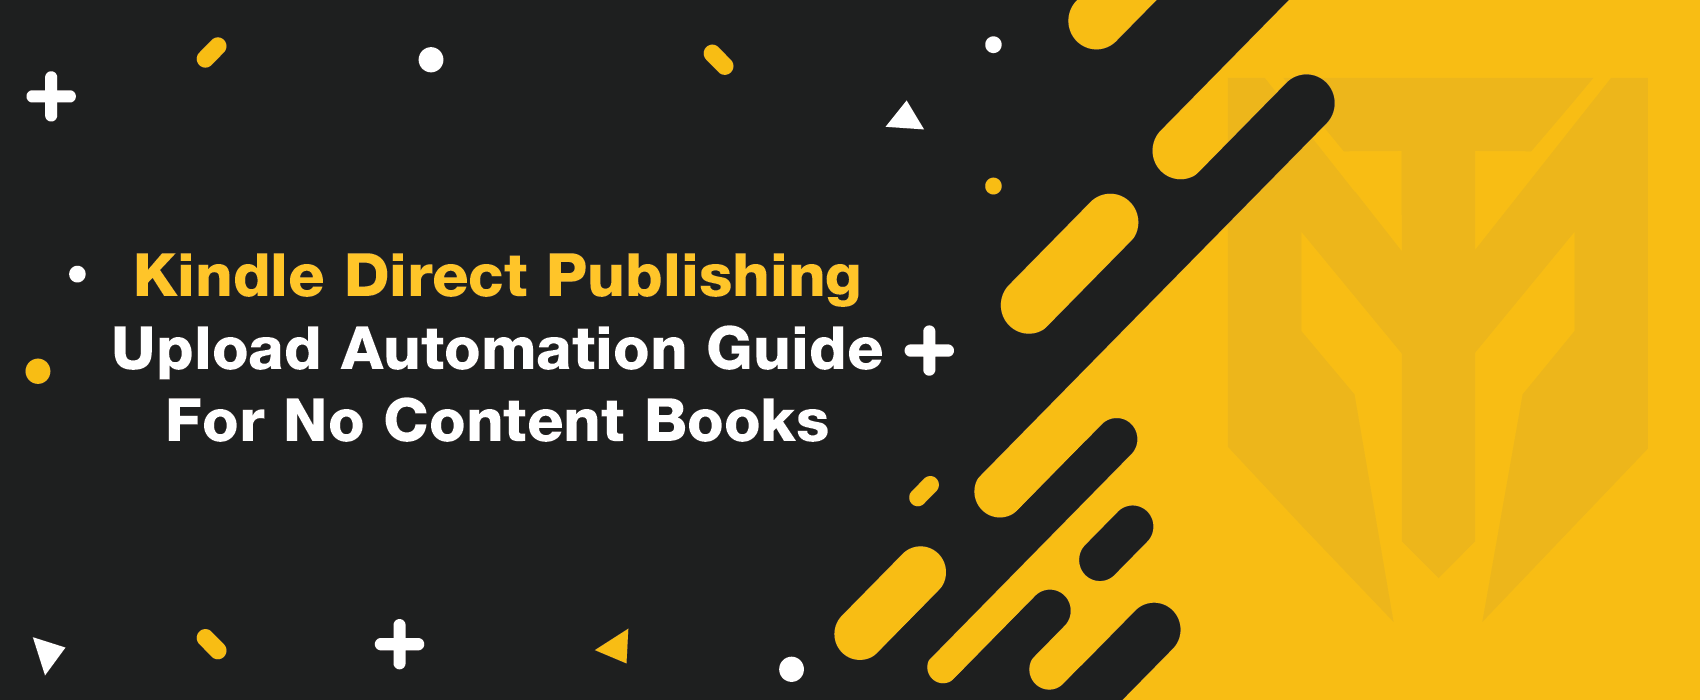 Kindle Direct Publishing Upload Automation Guide For No